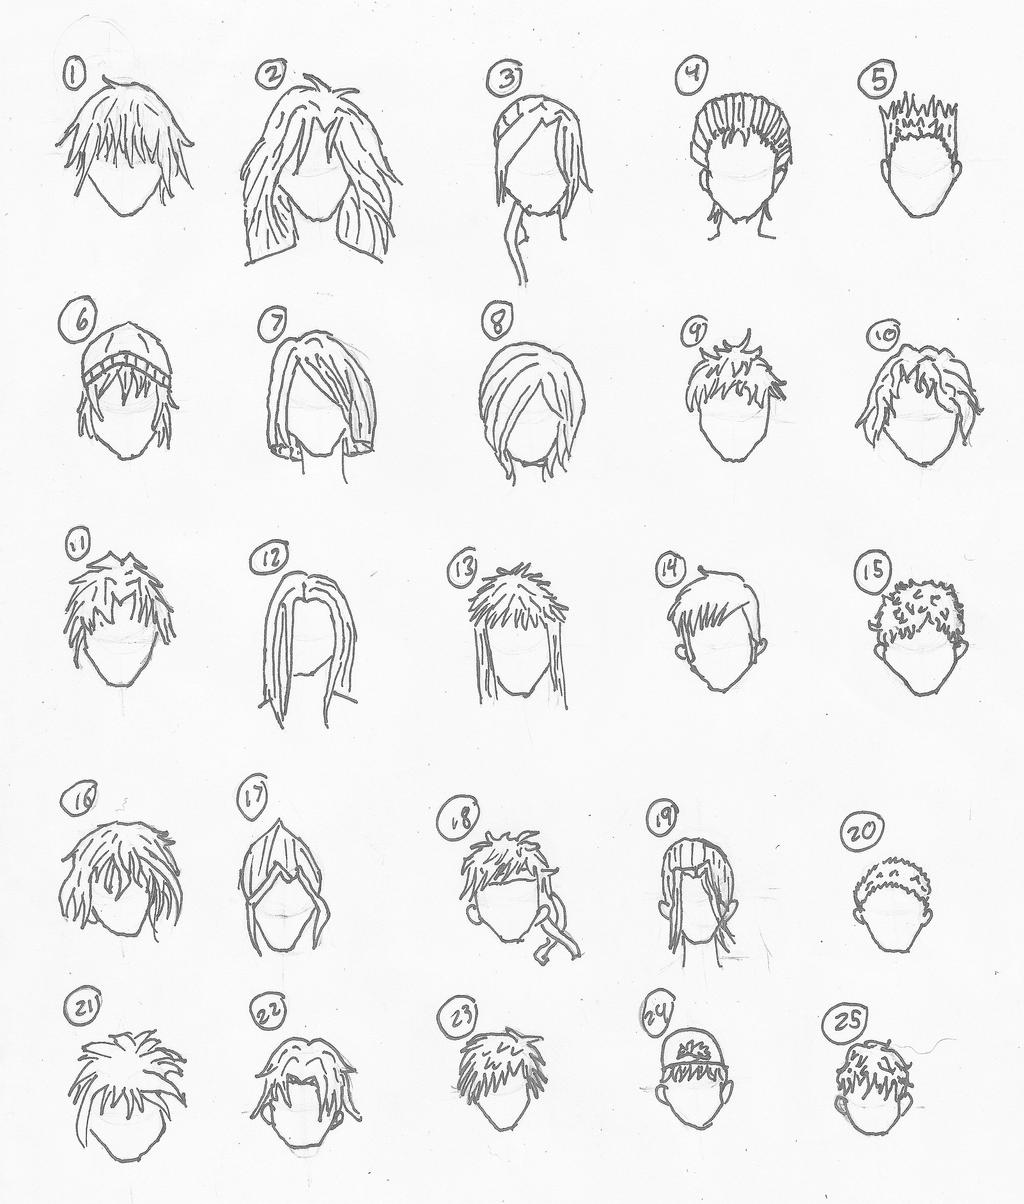 Male animecartoon hairstyles by nagi126 on deviantart male animecartoon hairstyles by nagi126 urmus Choice Image